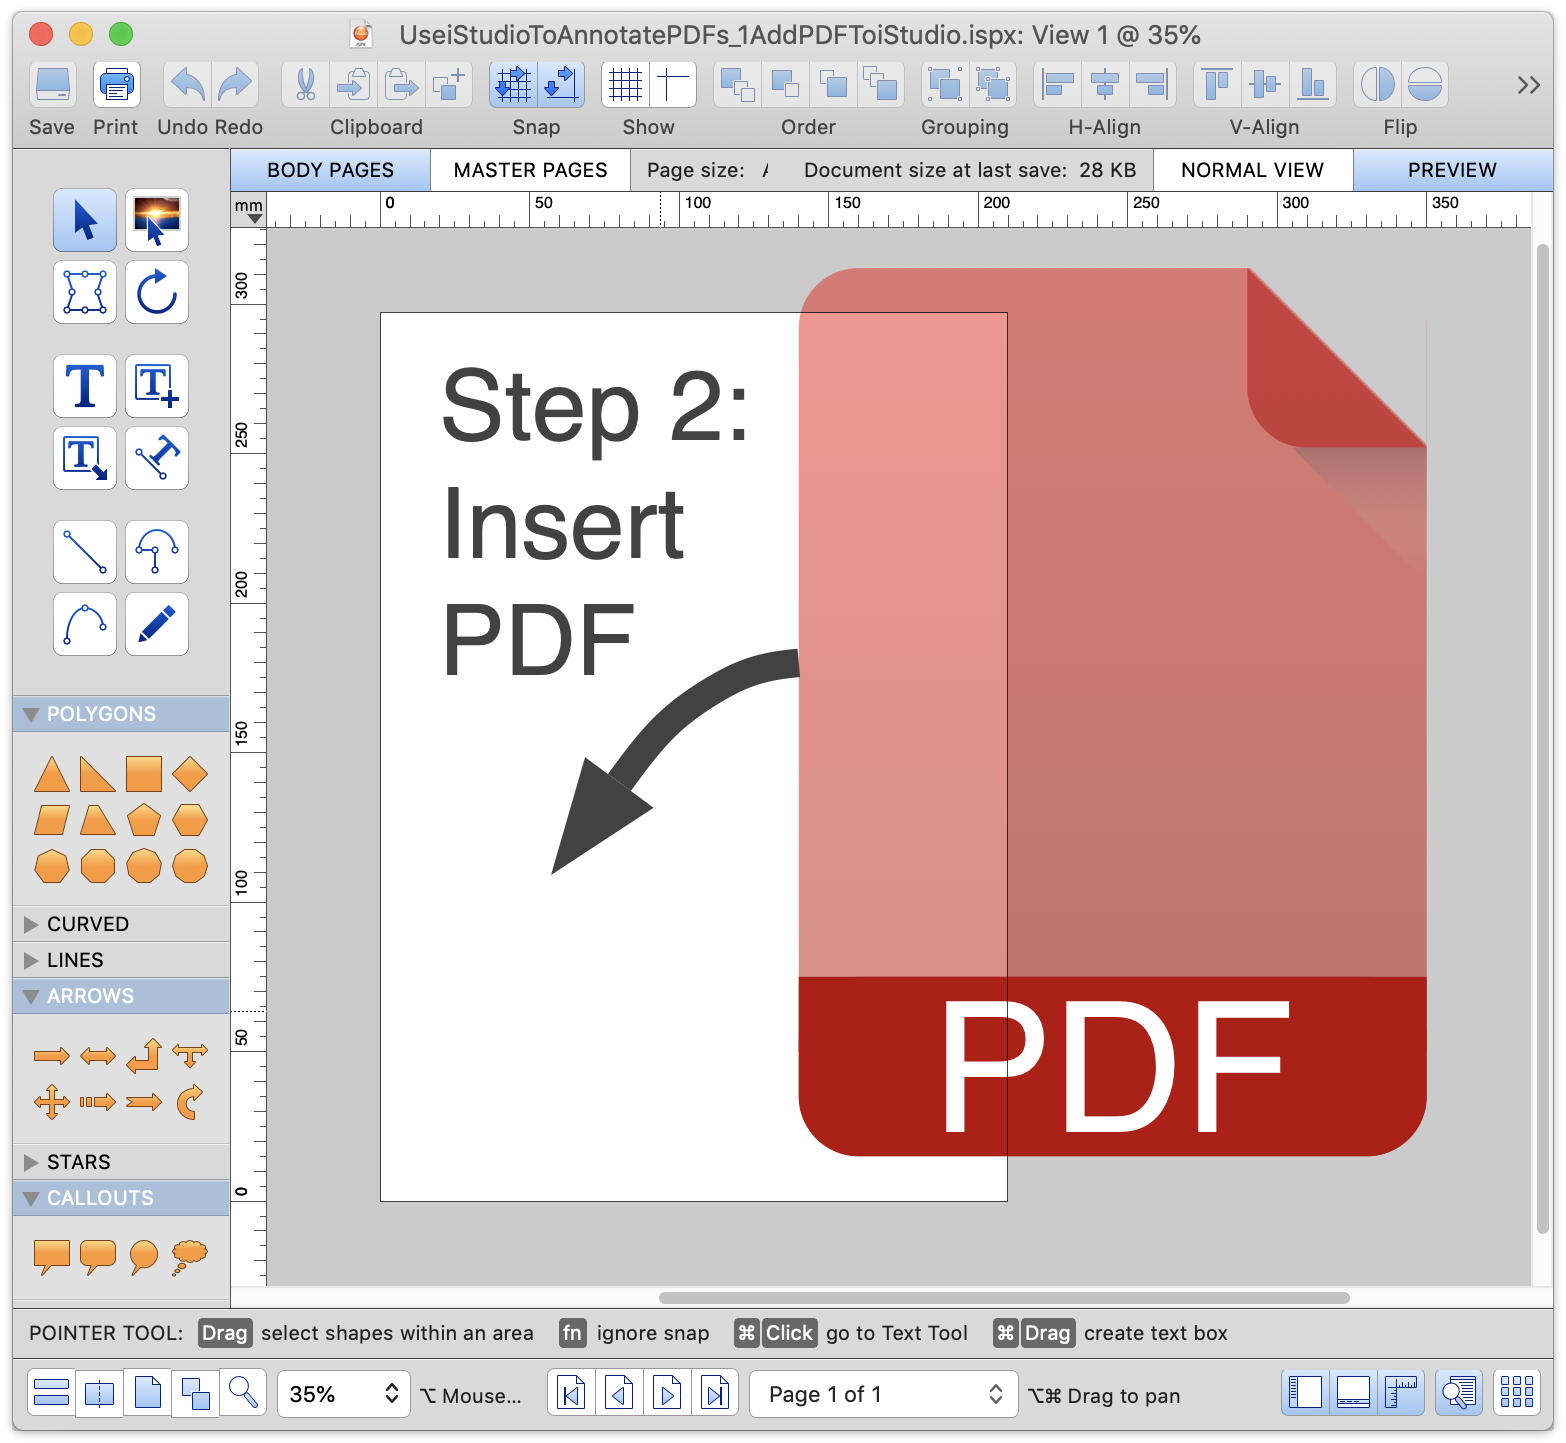 Insert a PDF into a new iStudio document